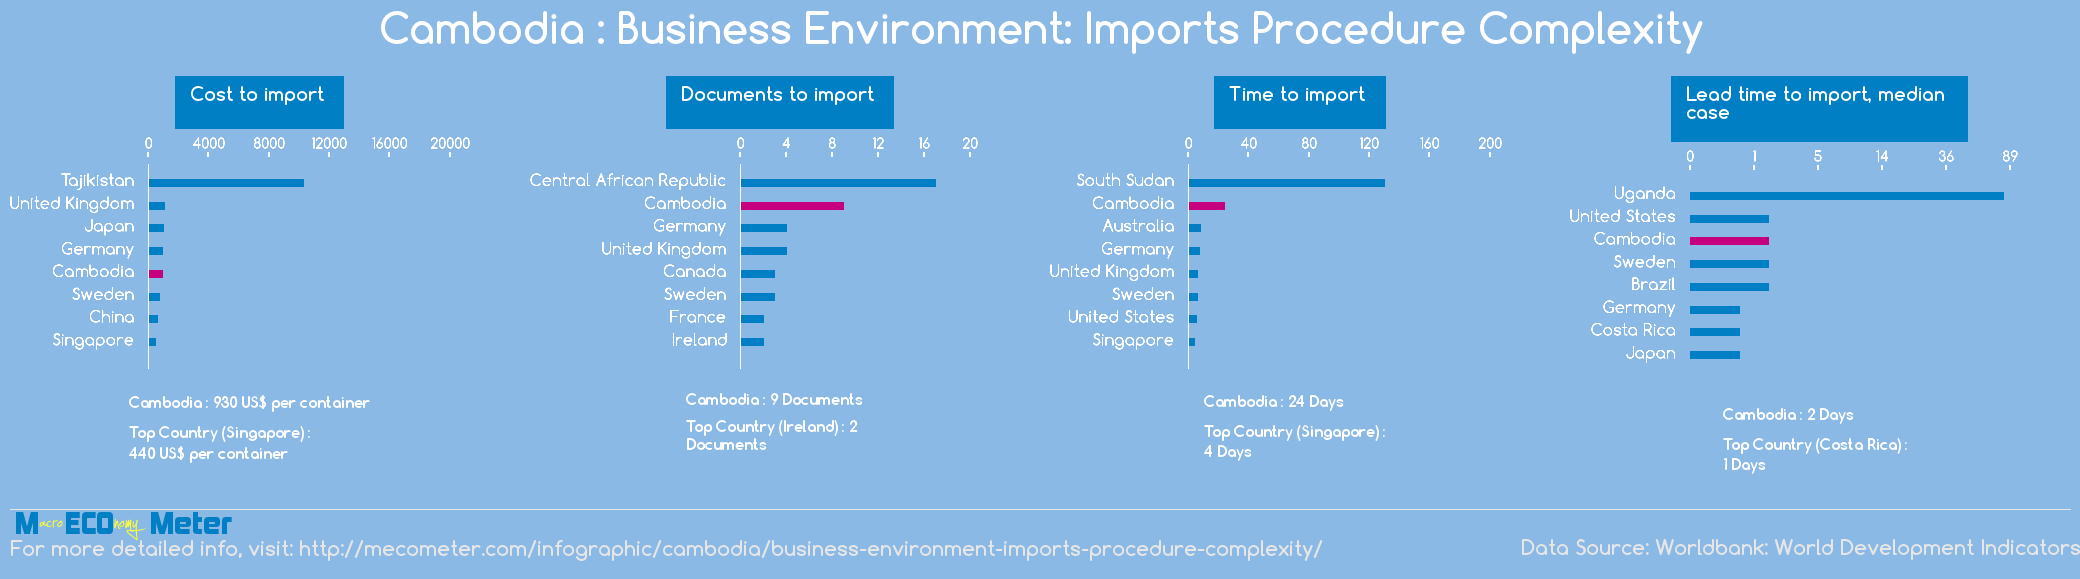 Cambodia : Business Environment: Imports Procedure Complexity